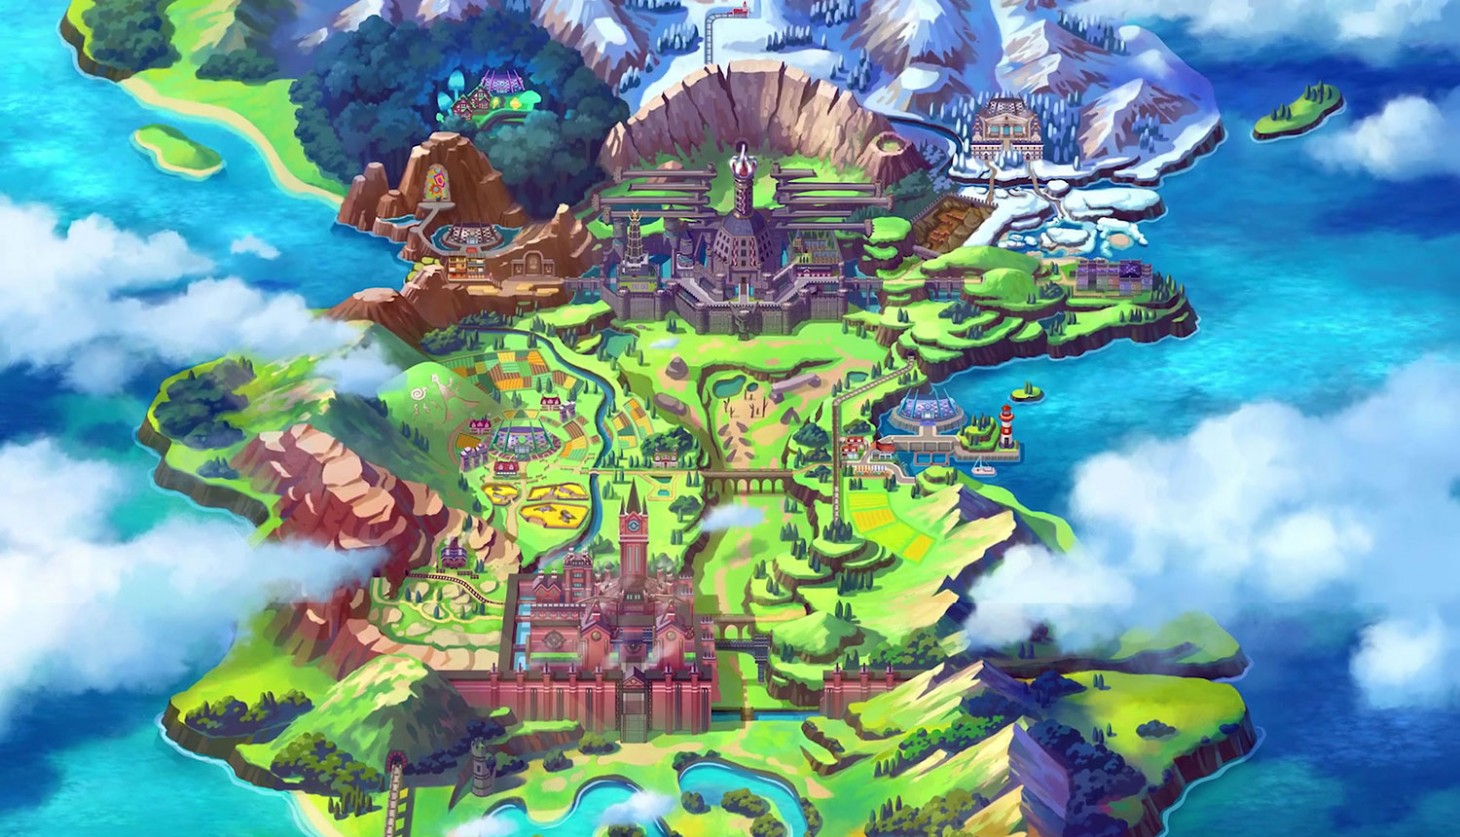 15 Things You Might Have Missed In The Pokemon Sword And Shield